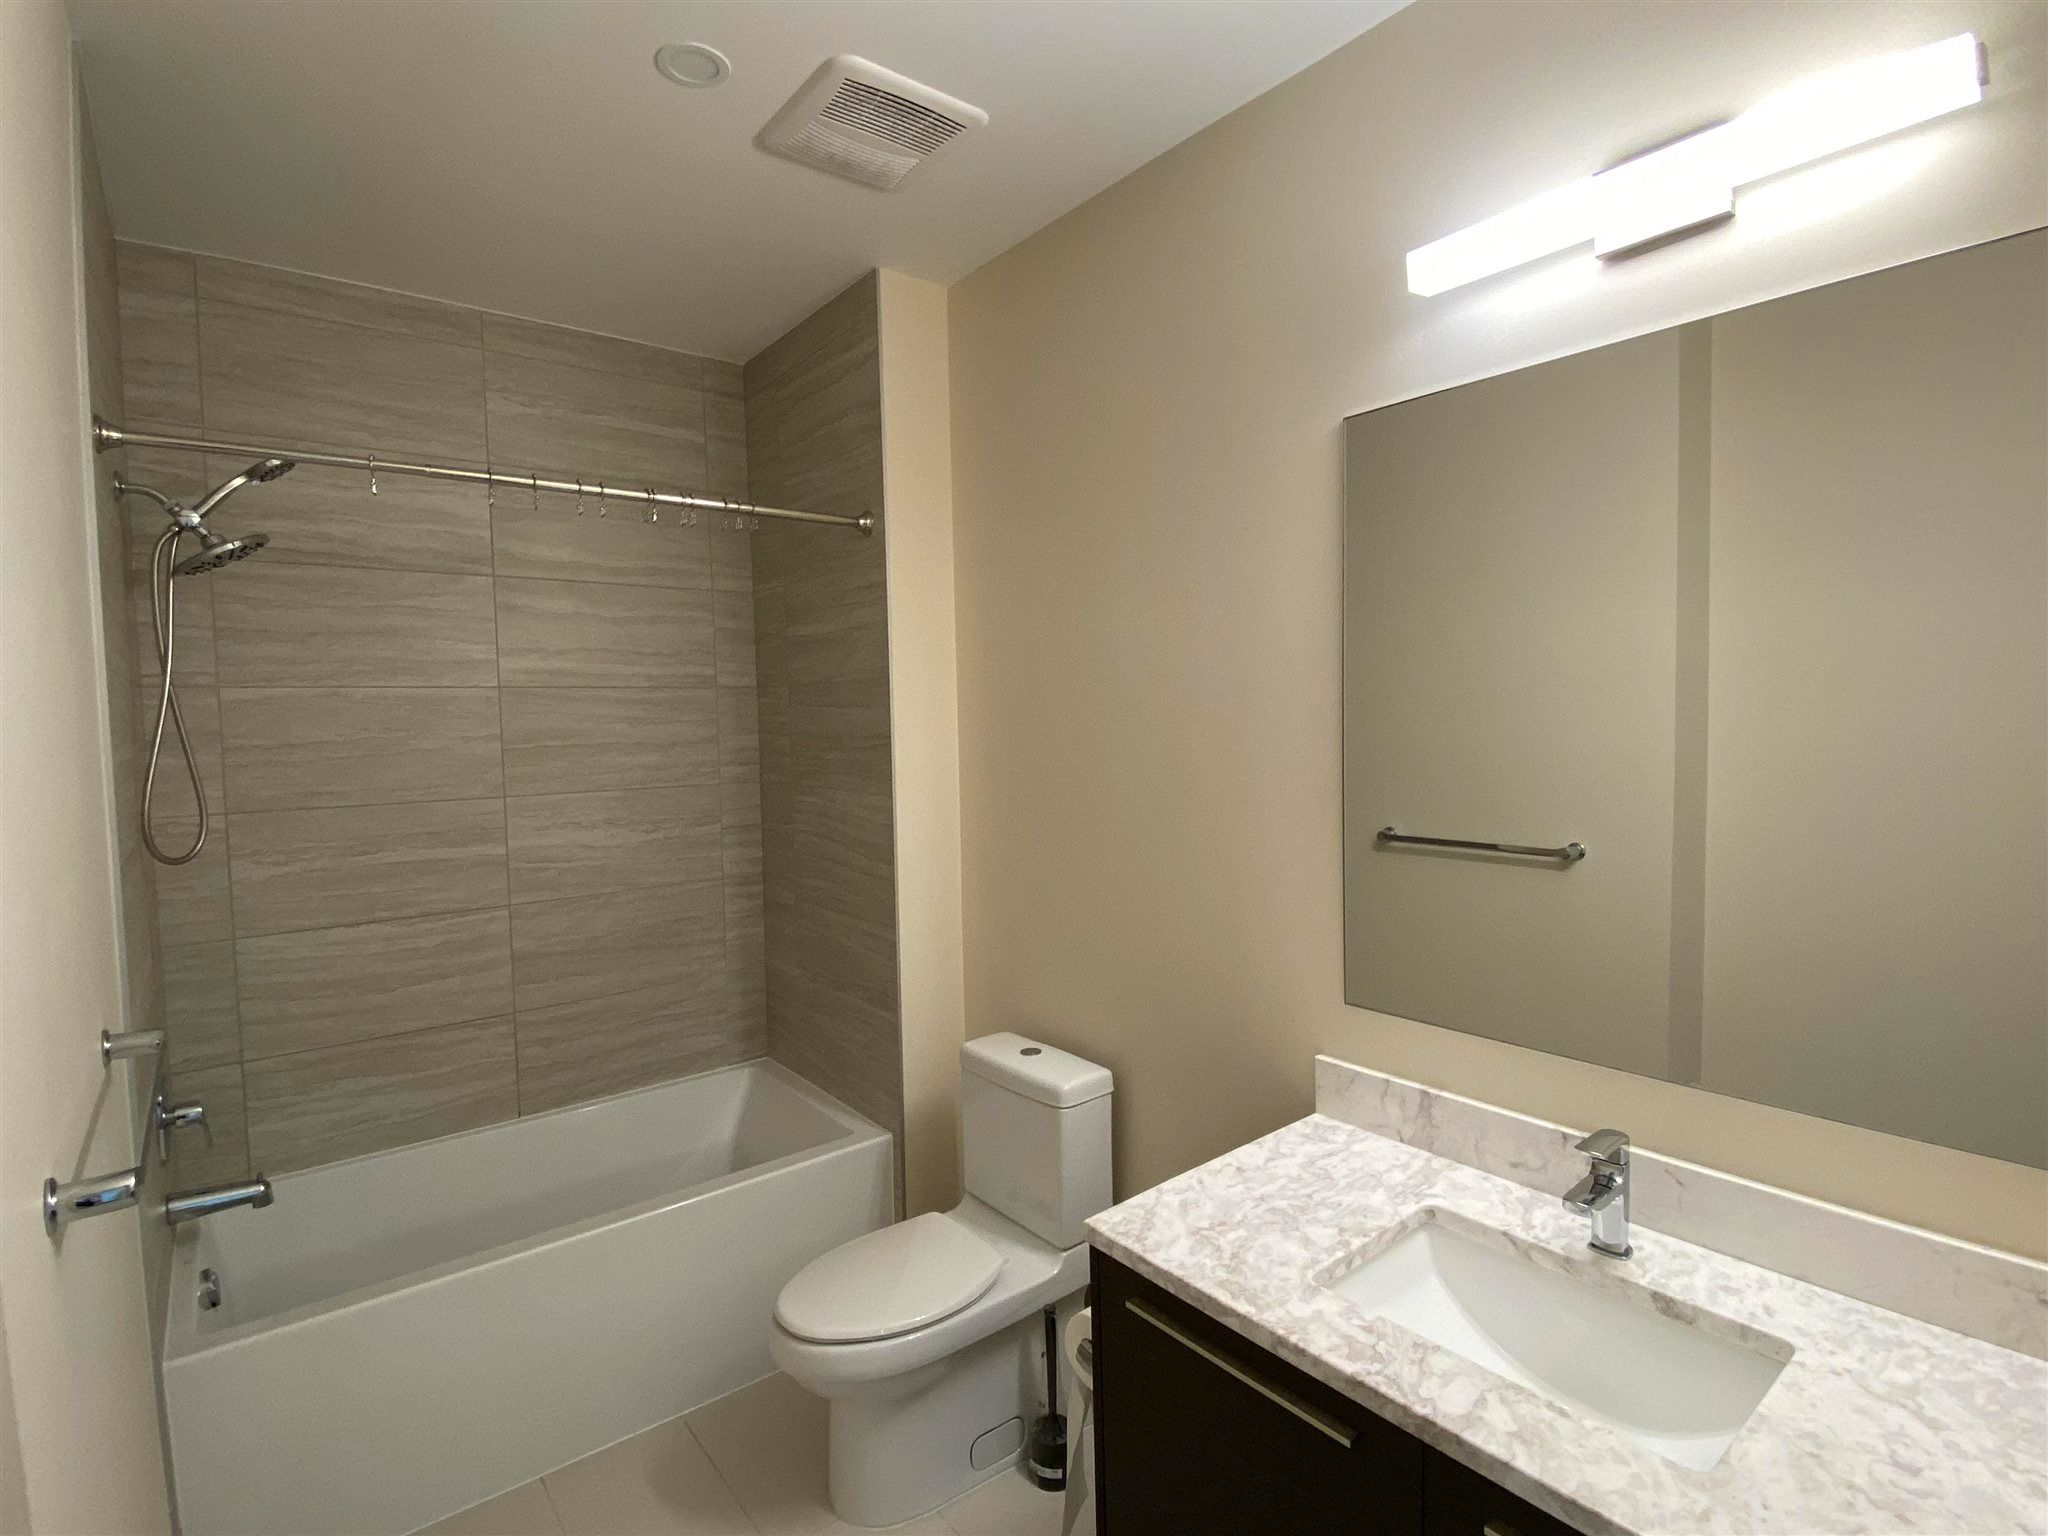 """Photo 12: Photos: 308 6288 CASSIE Avenue in Burnaby: Metrotown Condo for sale in """"GOLD HOUSE SOUTH TOWER"""" (Burnaby South)  : MLS®# R2606367"""